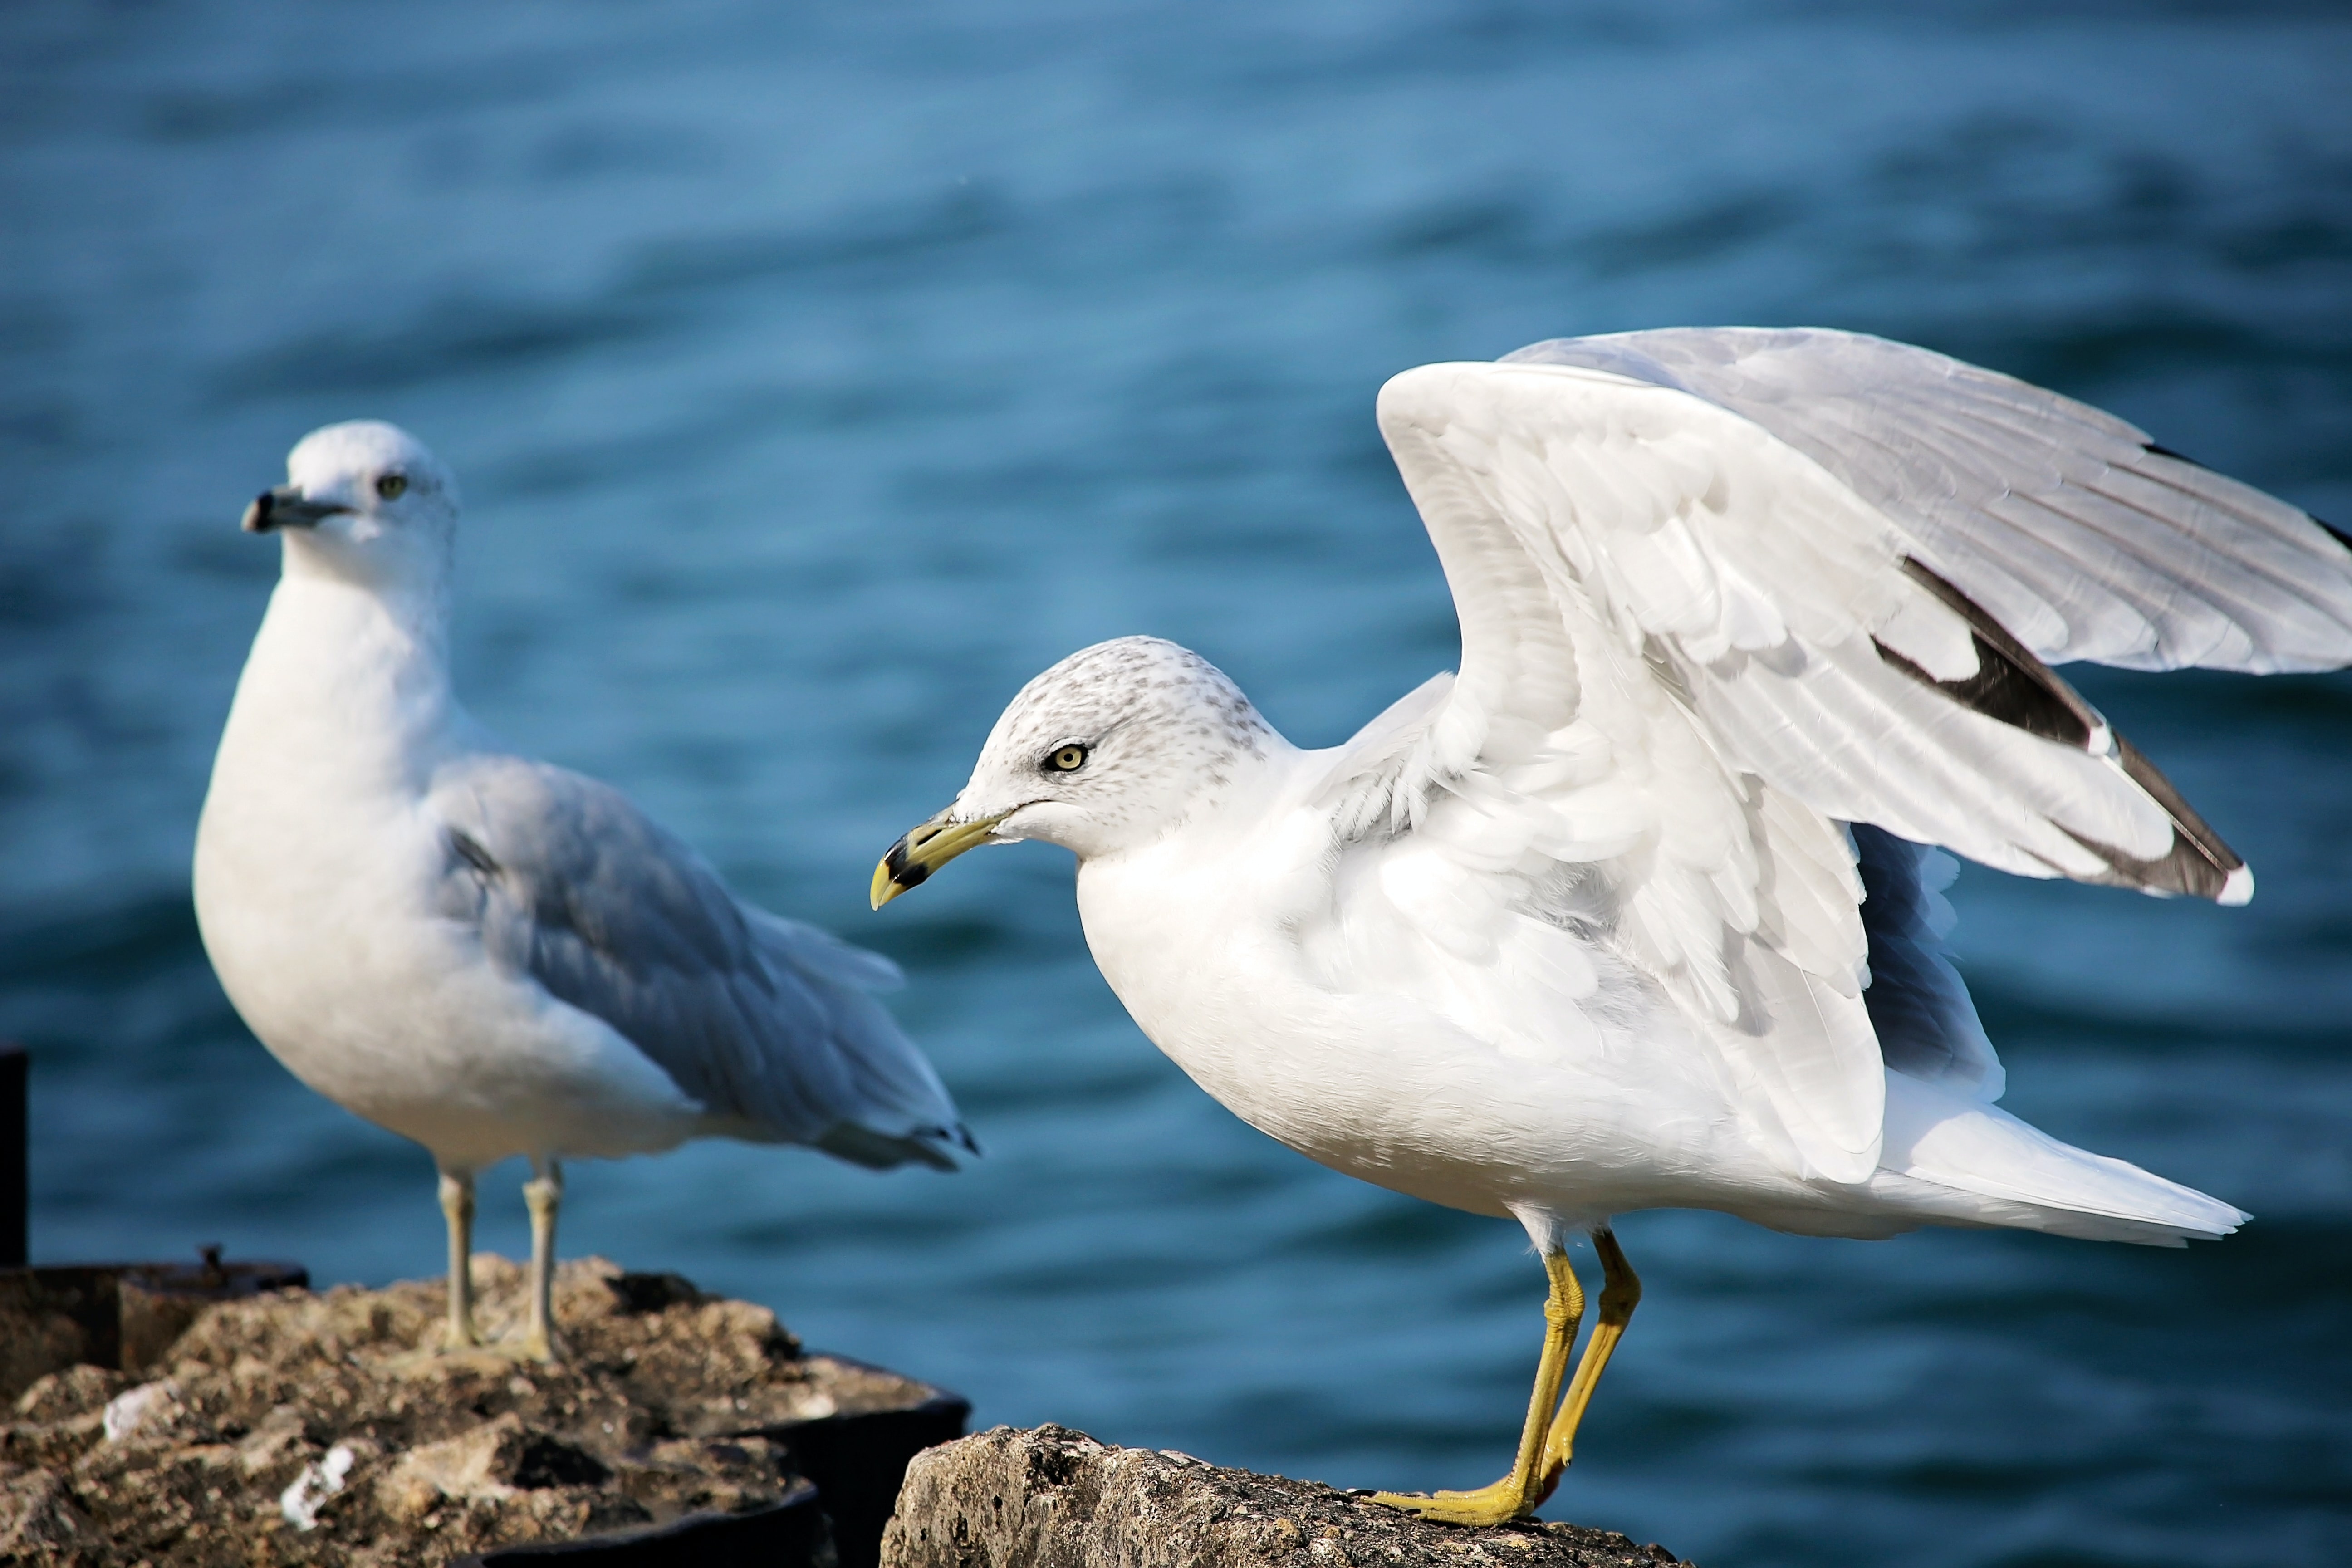 Two seagulls on the rock by the ocean at Montrose Beach